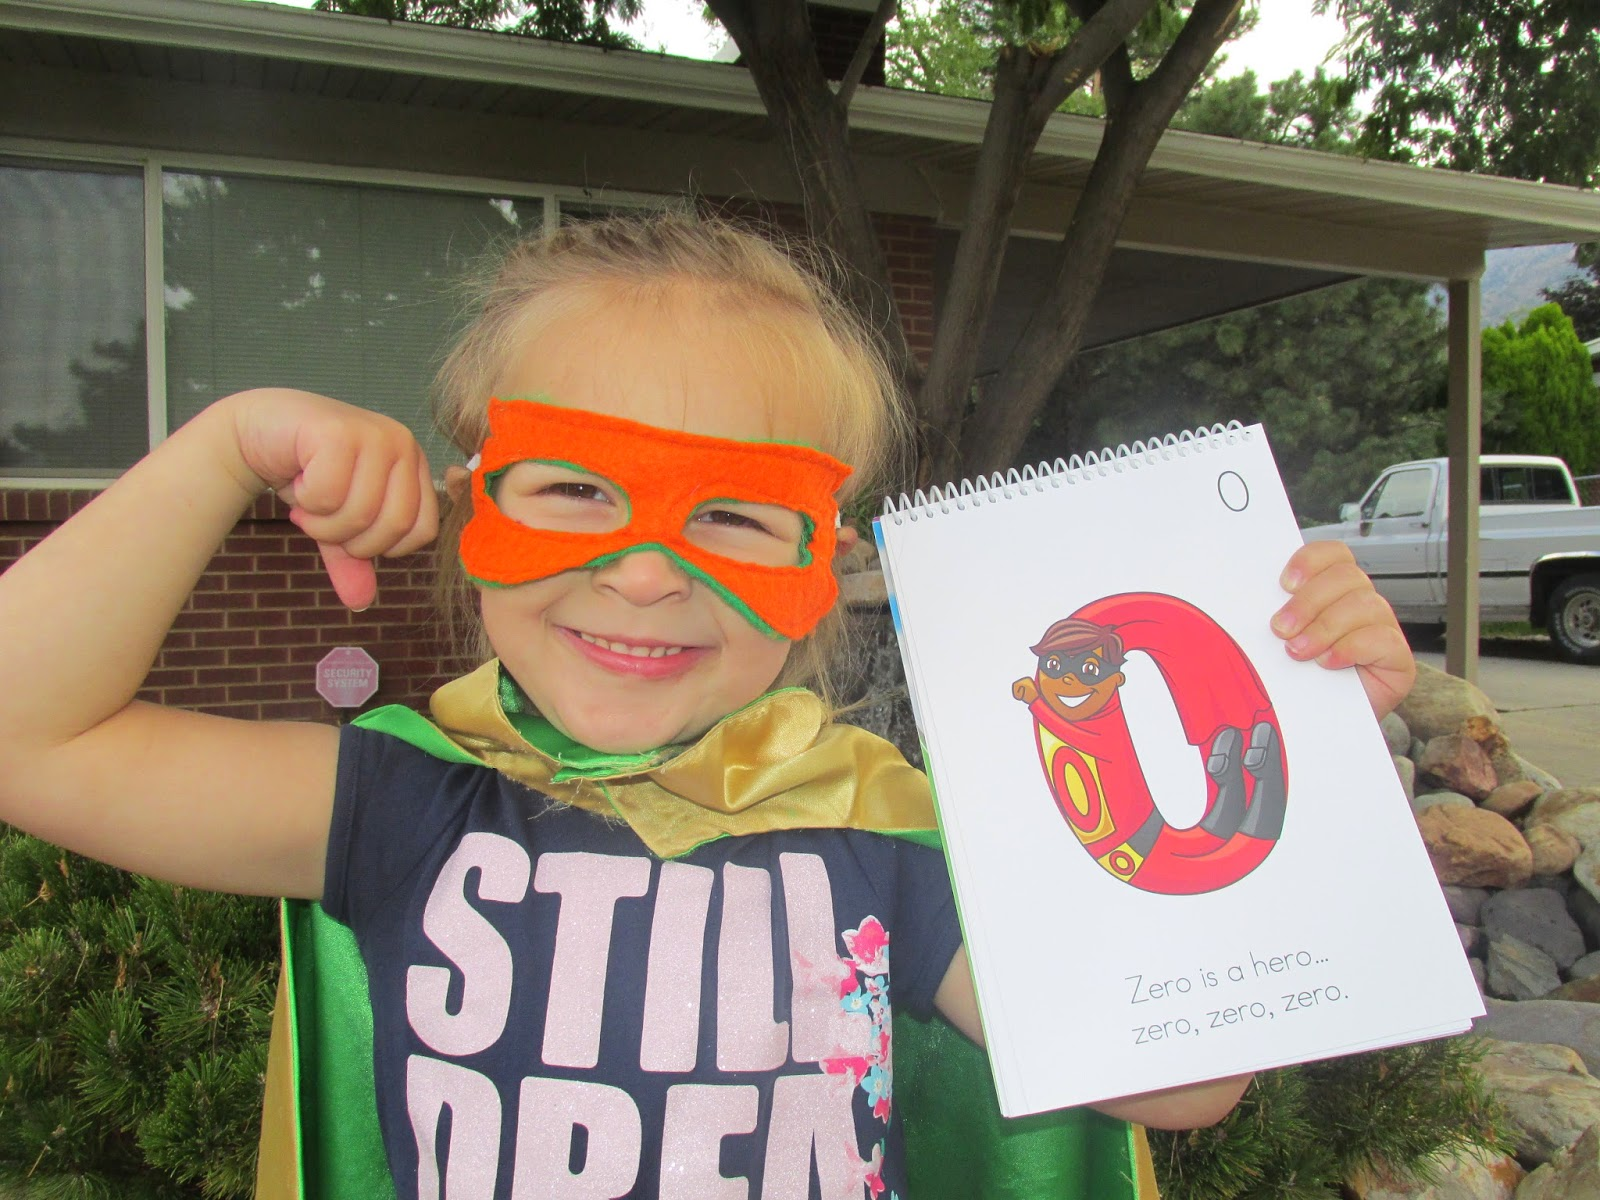 Child Superhero for Zero is a hero theme